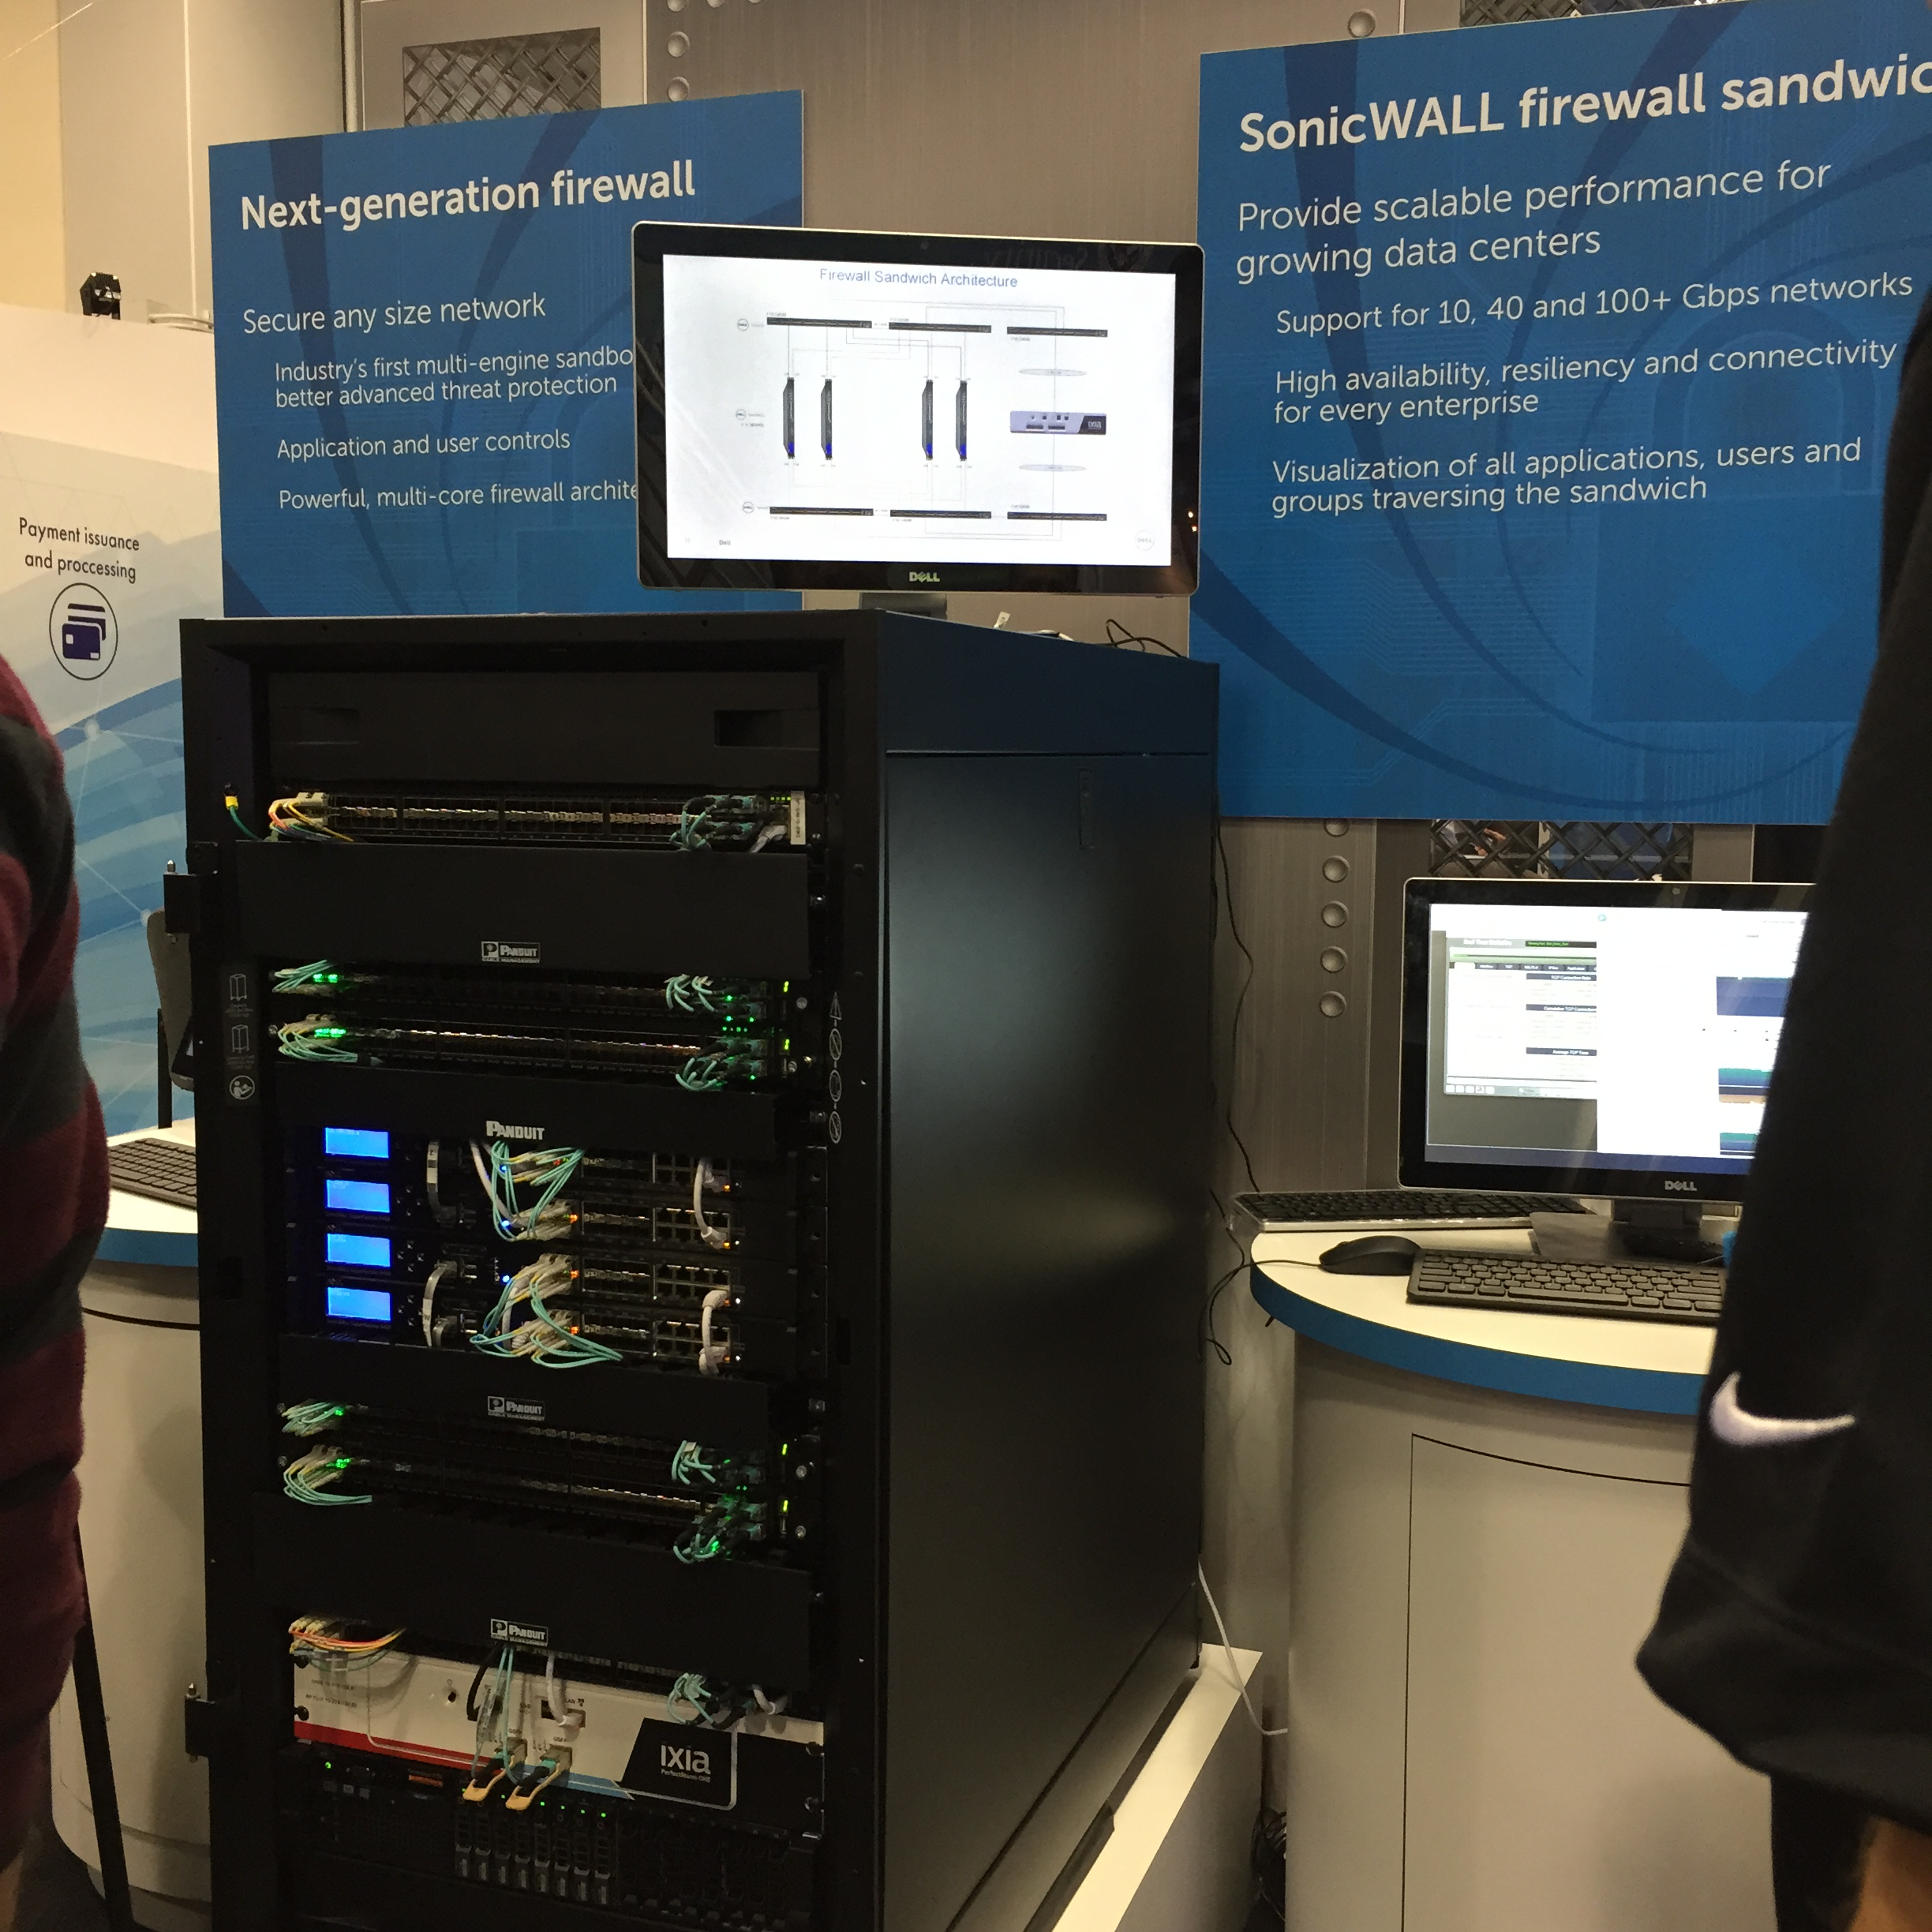 Picture of SonicWall's SuperMassive 9000 Series Next-Generation Firewall at a show